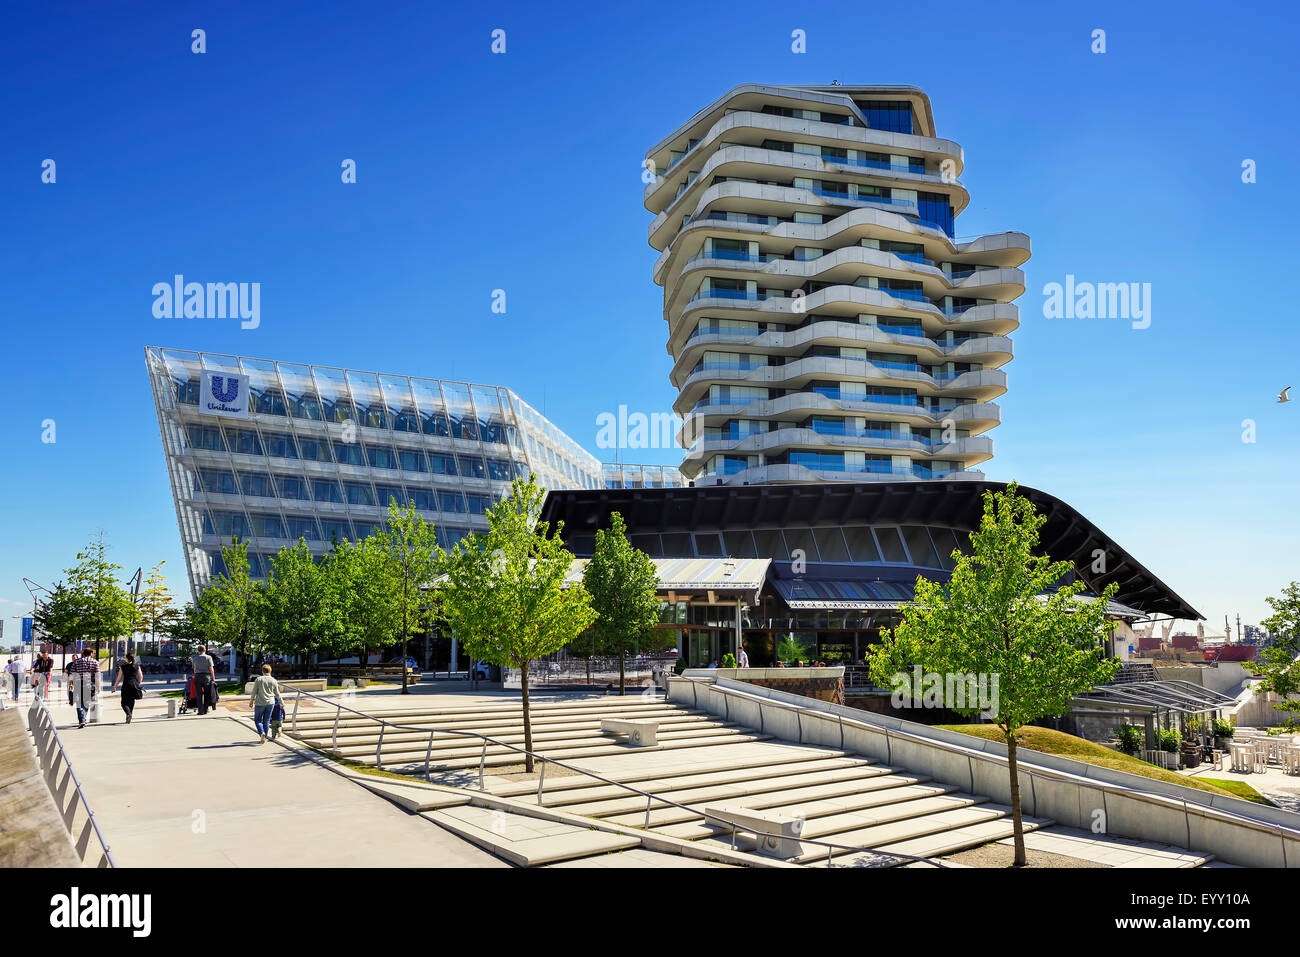 Unilever centre and Marco Polo Tower at Strandkai in the harbor city, Hamburg, Germany - Stock Image